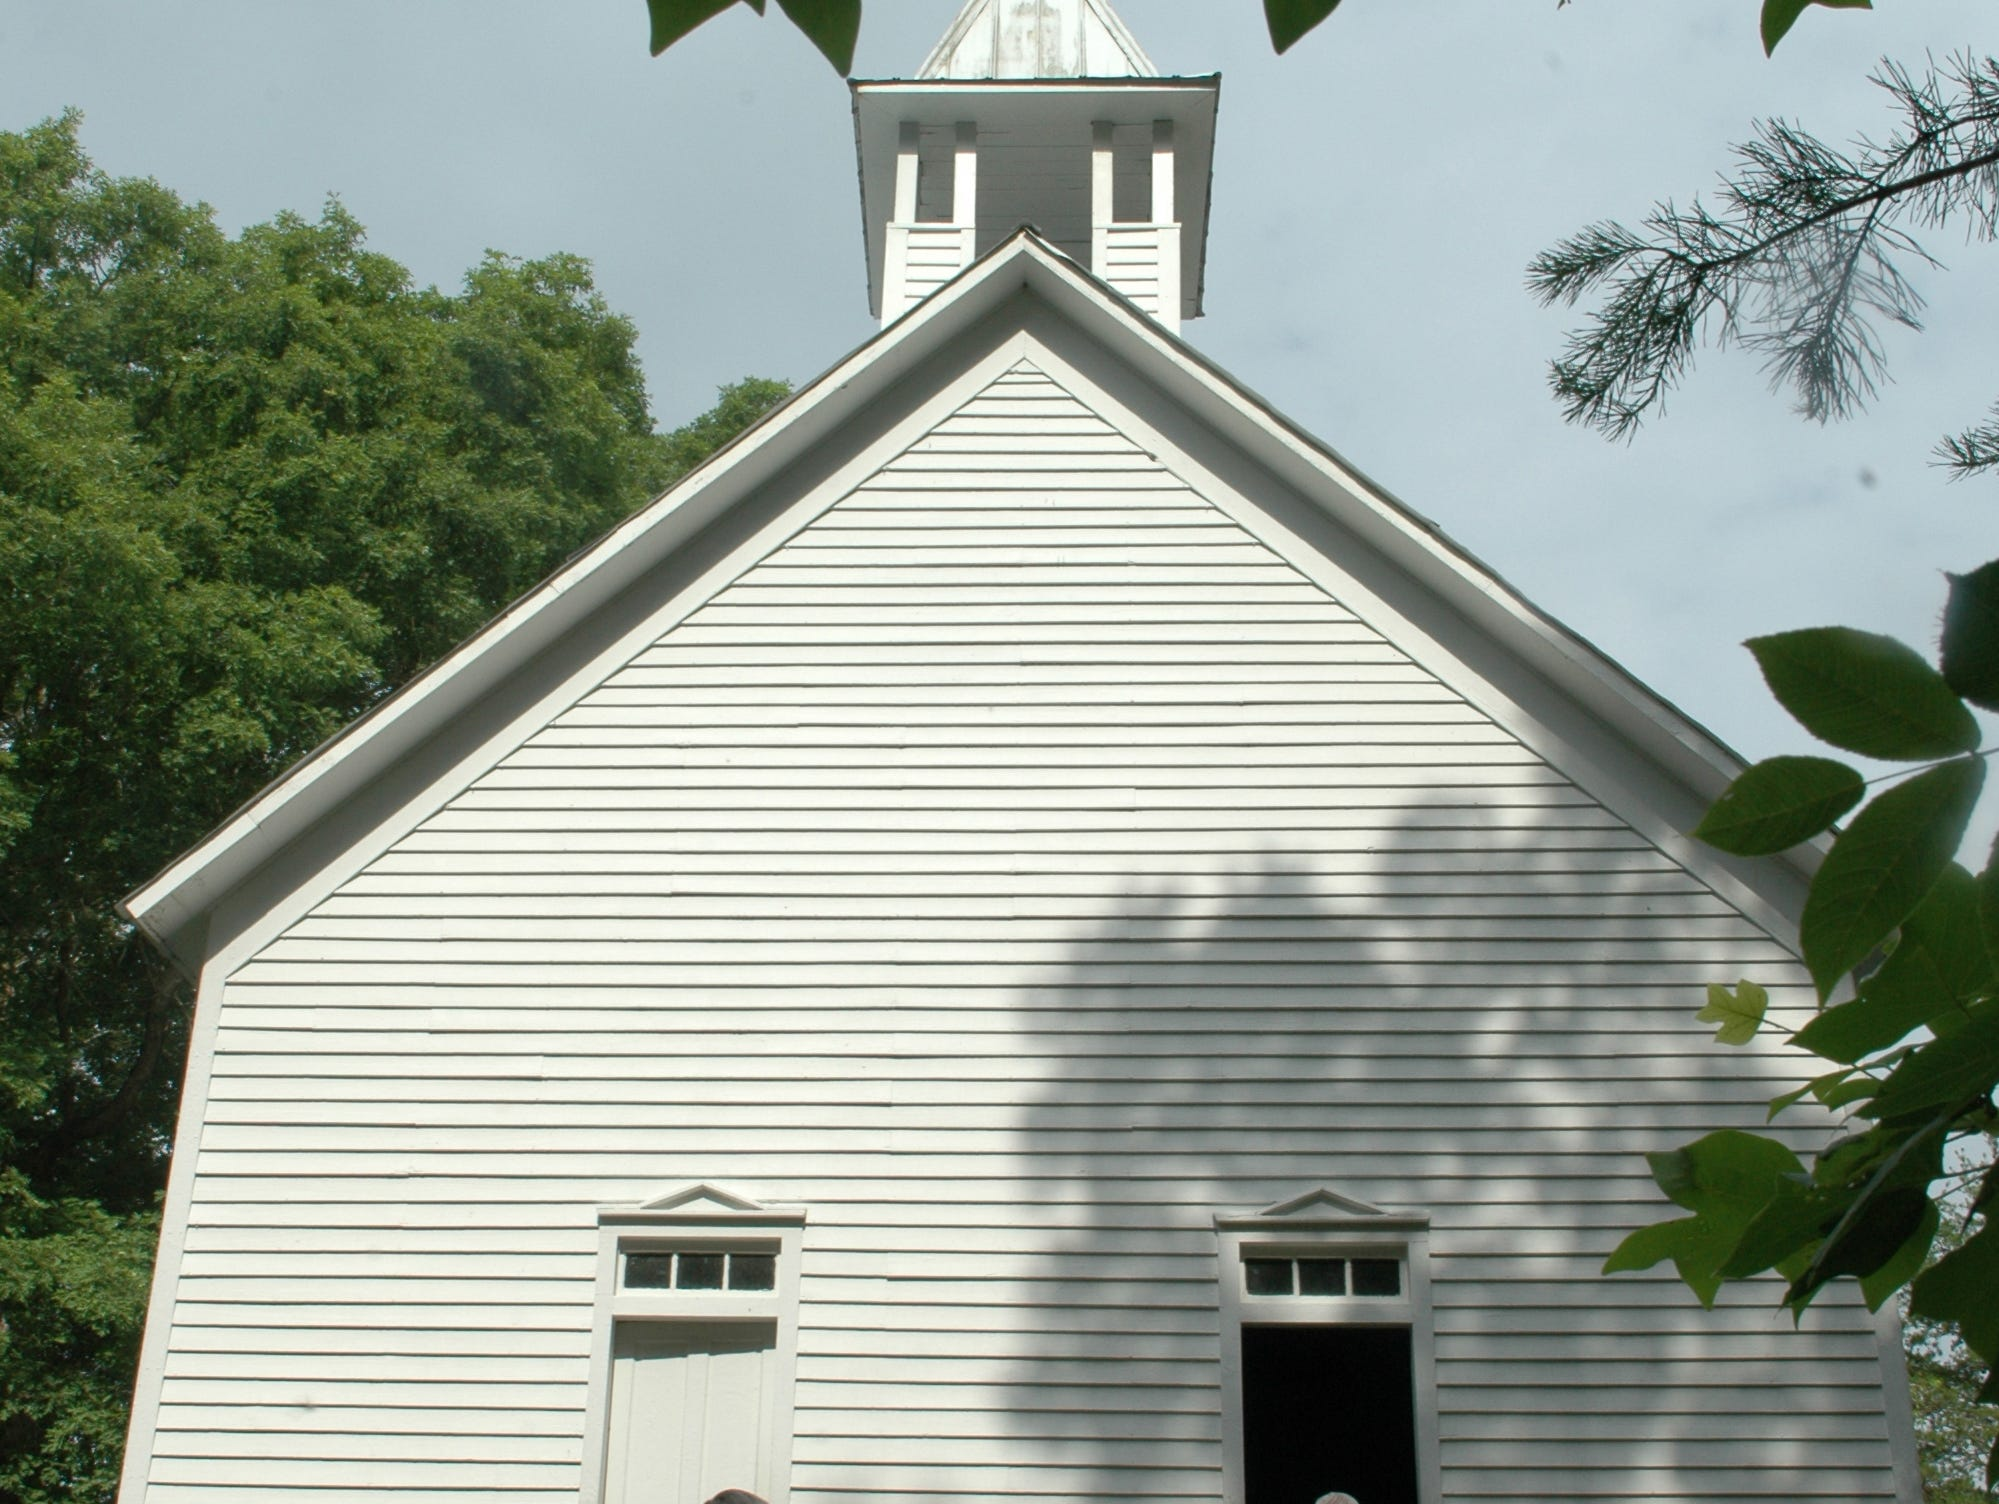 Cades Cove's Primitive Baptist Church in the Great Smoky Mountain National Park.